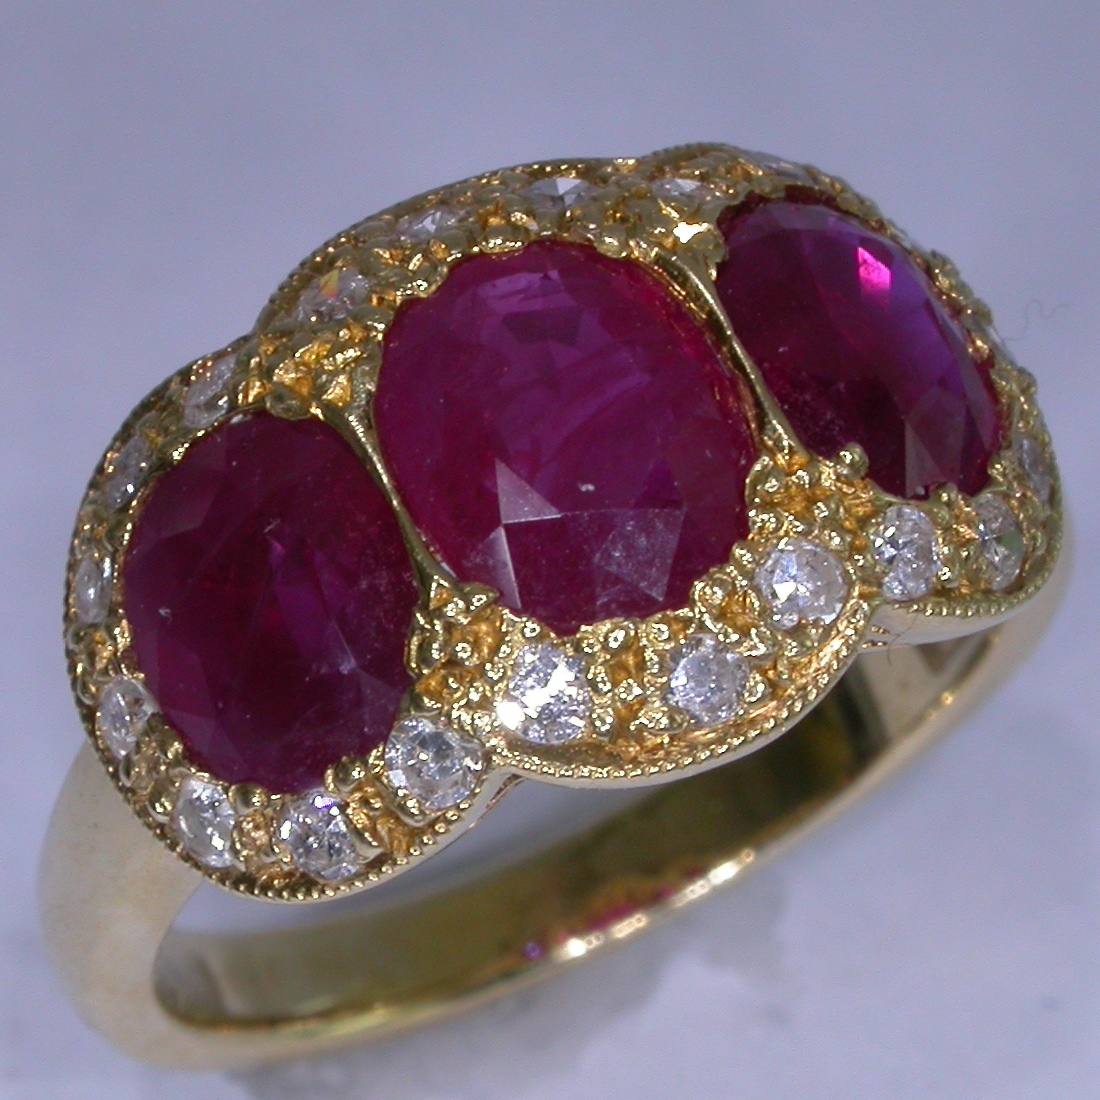 Colour Stone Rings - #1637